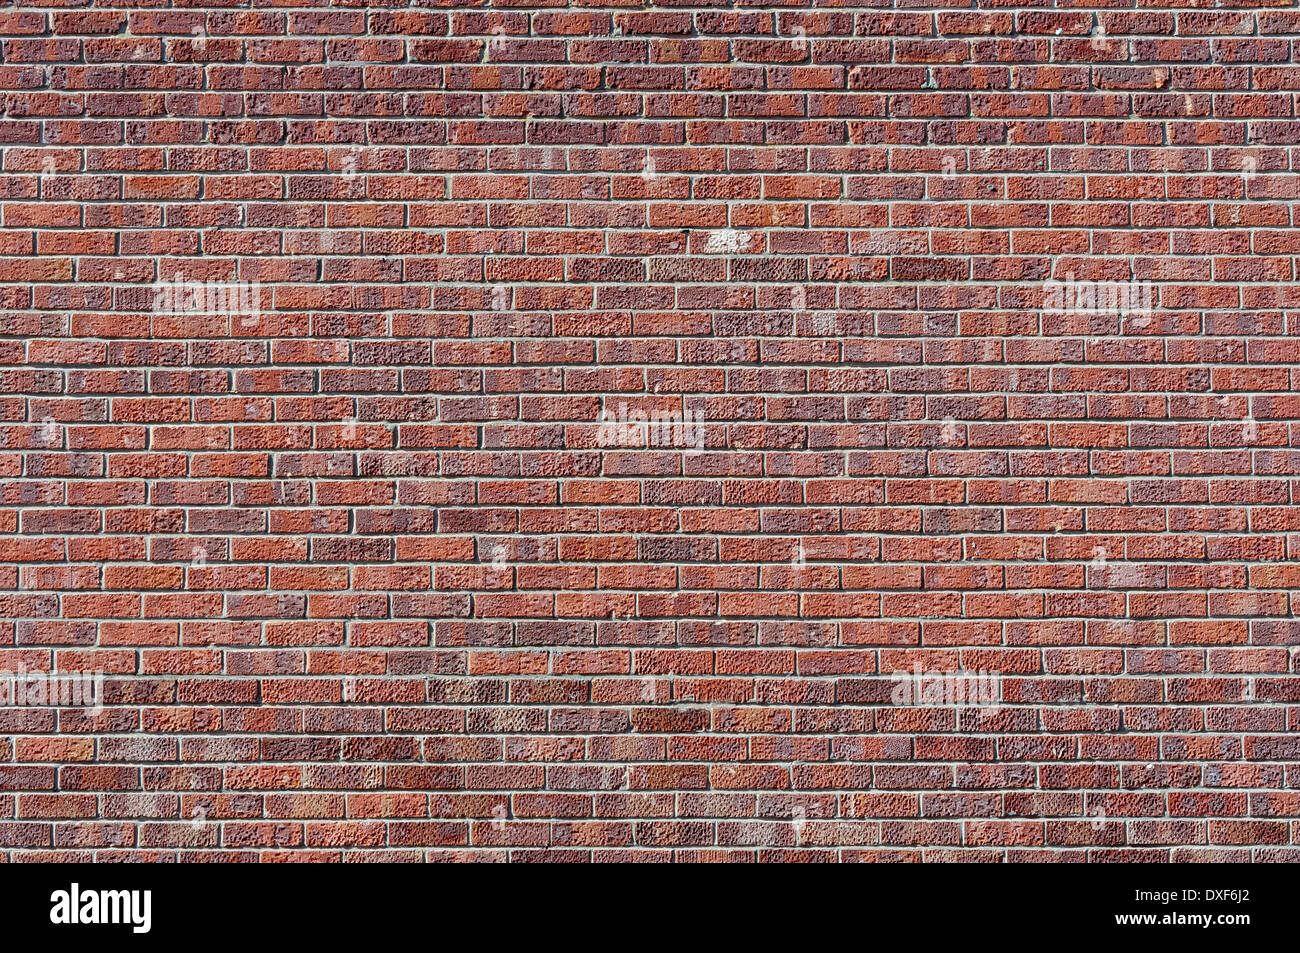 Pocked and stained red brick wall; landscape orientation. - Stock Image